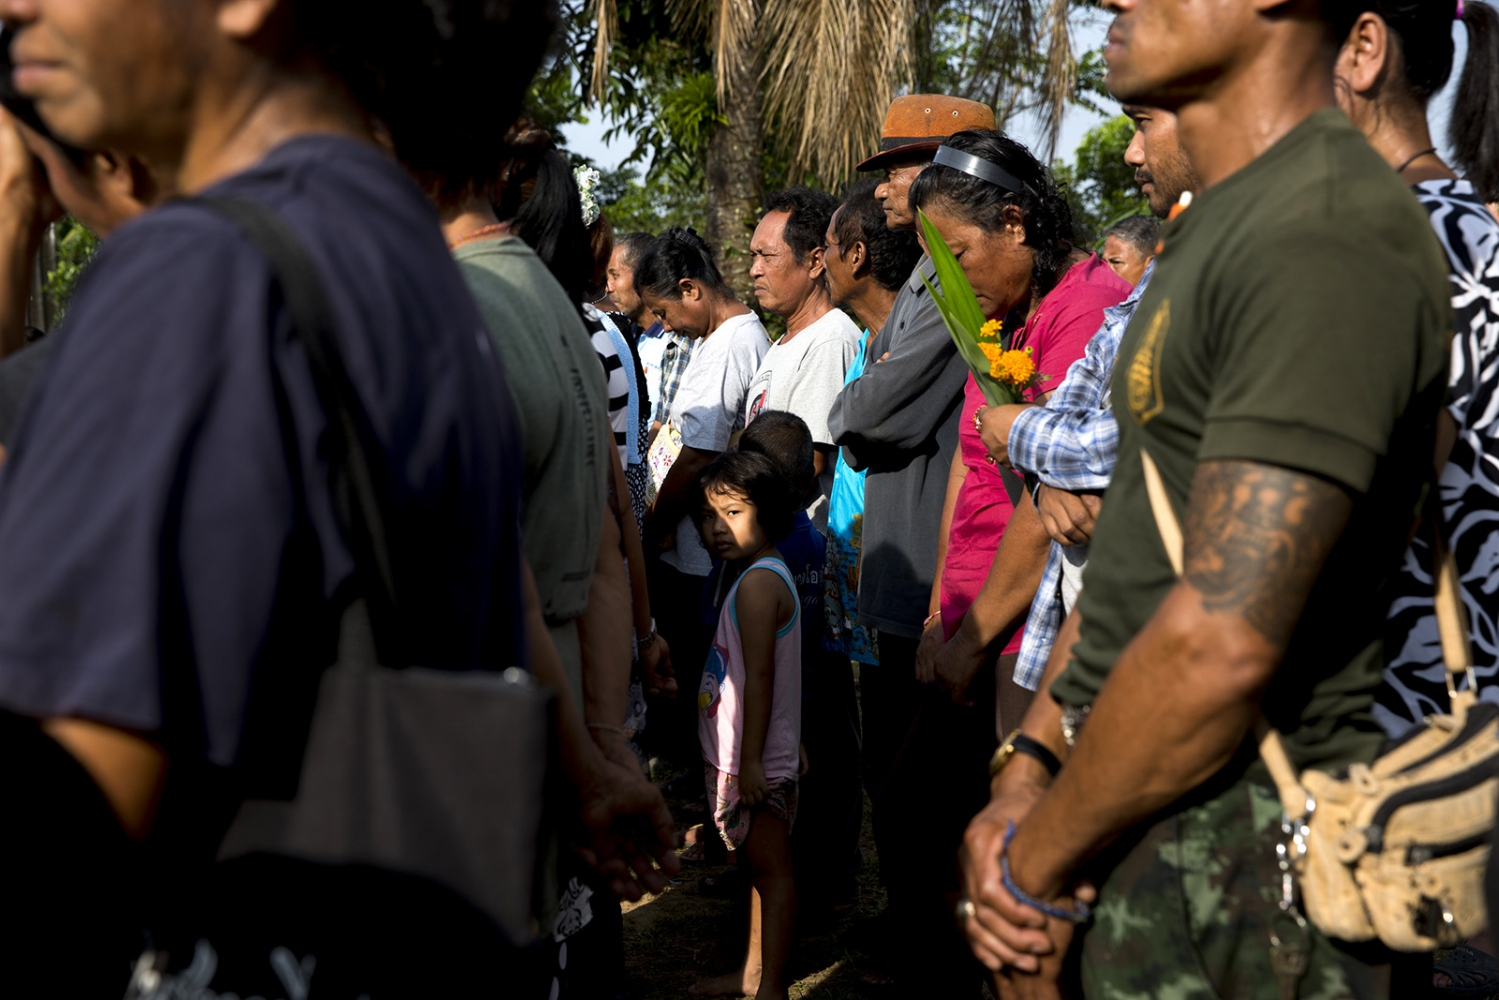 Villagers stand for one minute of silence on November 28th which marks the memorial day of Klong Sai Pattana village for each of the four people murdered during their prolonged fight to remain on the land. On 11 January 2010 Mr Somporn Pannapum who was shot dead whilst having dinner at his home in the village itself. Then on the 19 November 2012 Mrs Montha Chukaew, aged 54, and Mrs Pranee Boonrat, aged 50, were shot and killed while they were on their way to a local market. And then on 11 February 2015, Chai Bunthonglek was shot dead at his house by two gunmen.